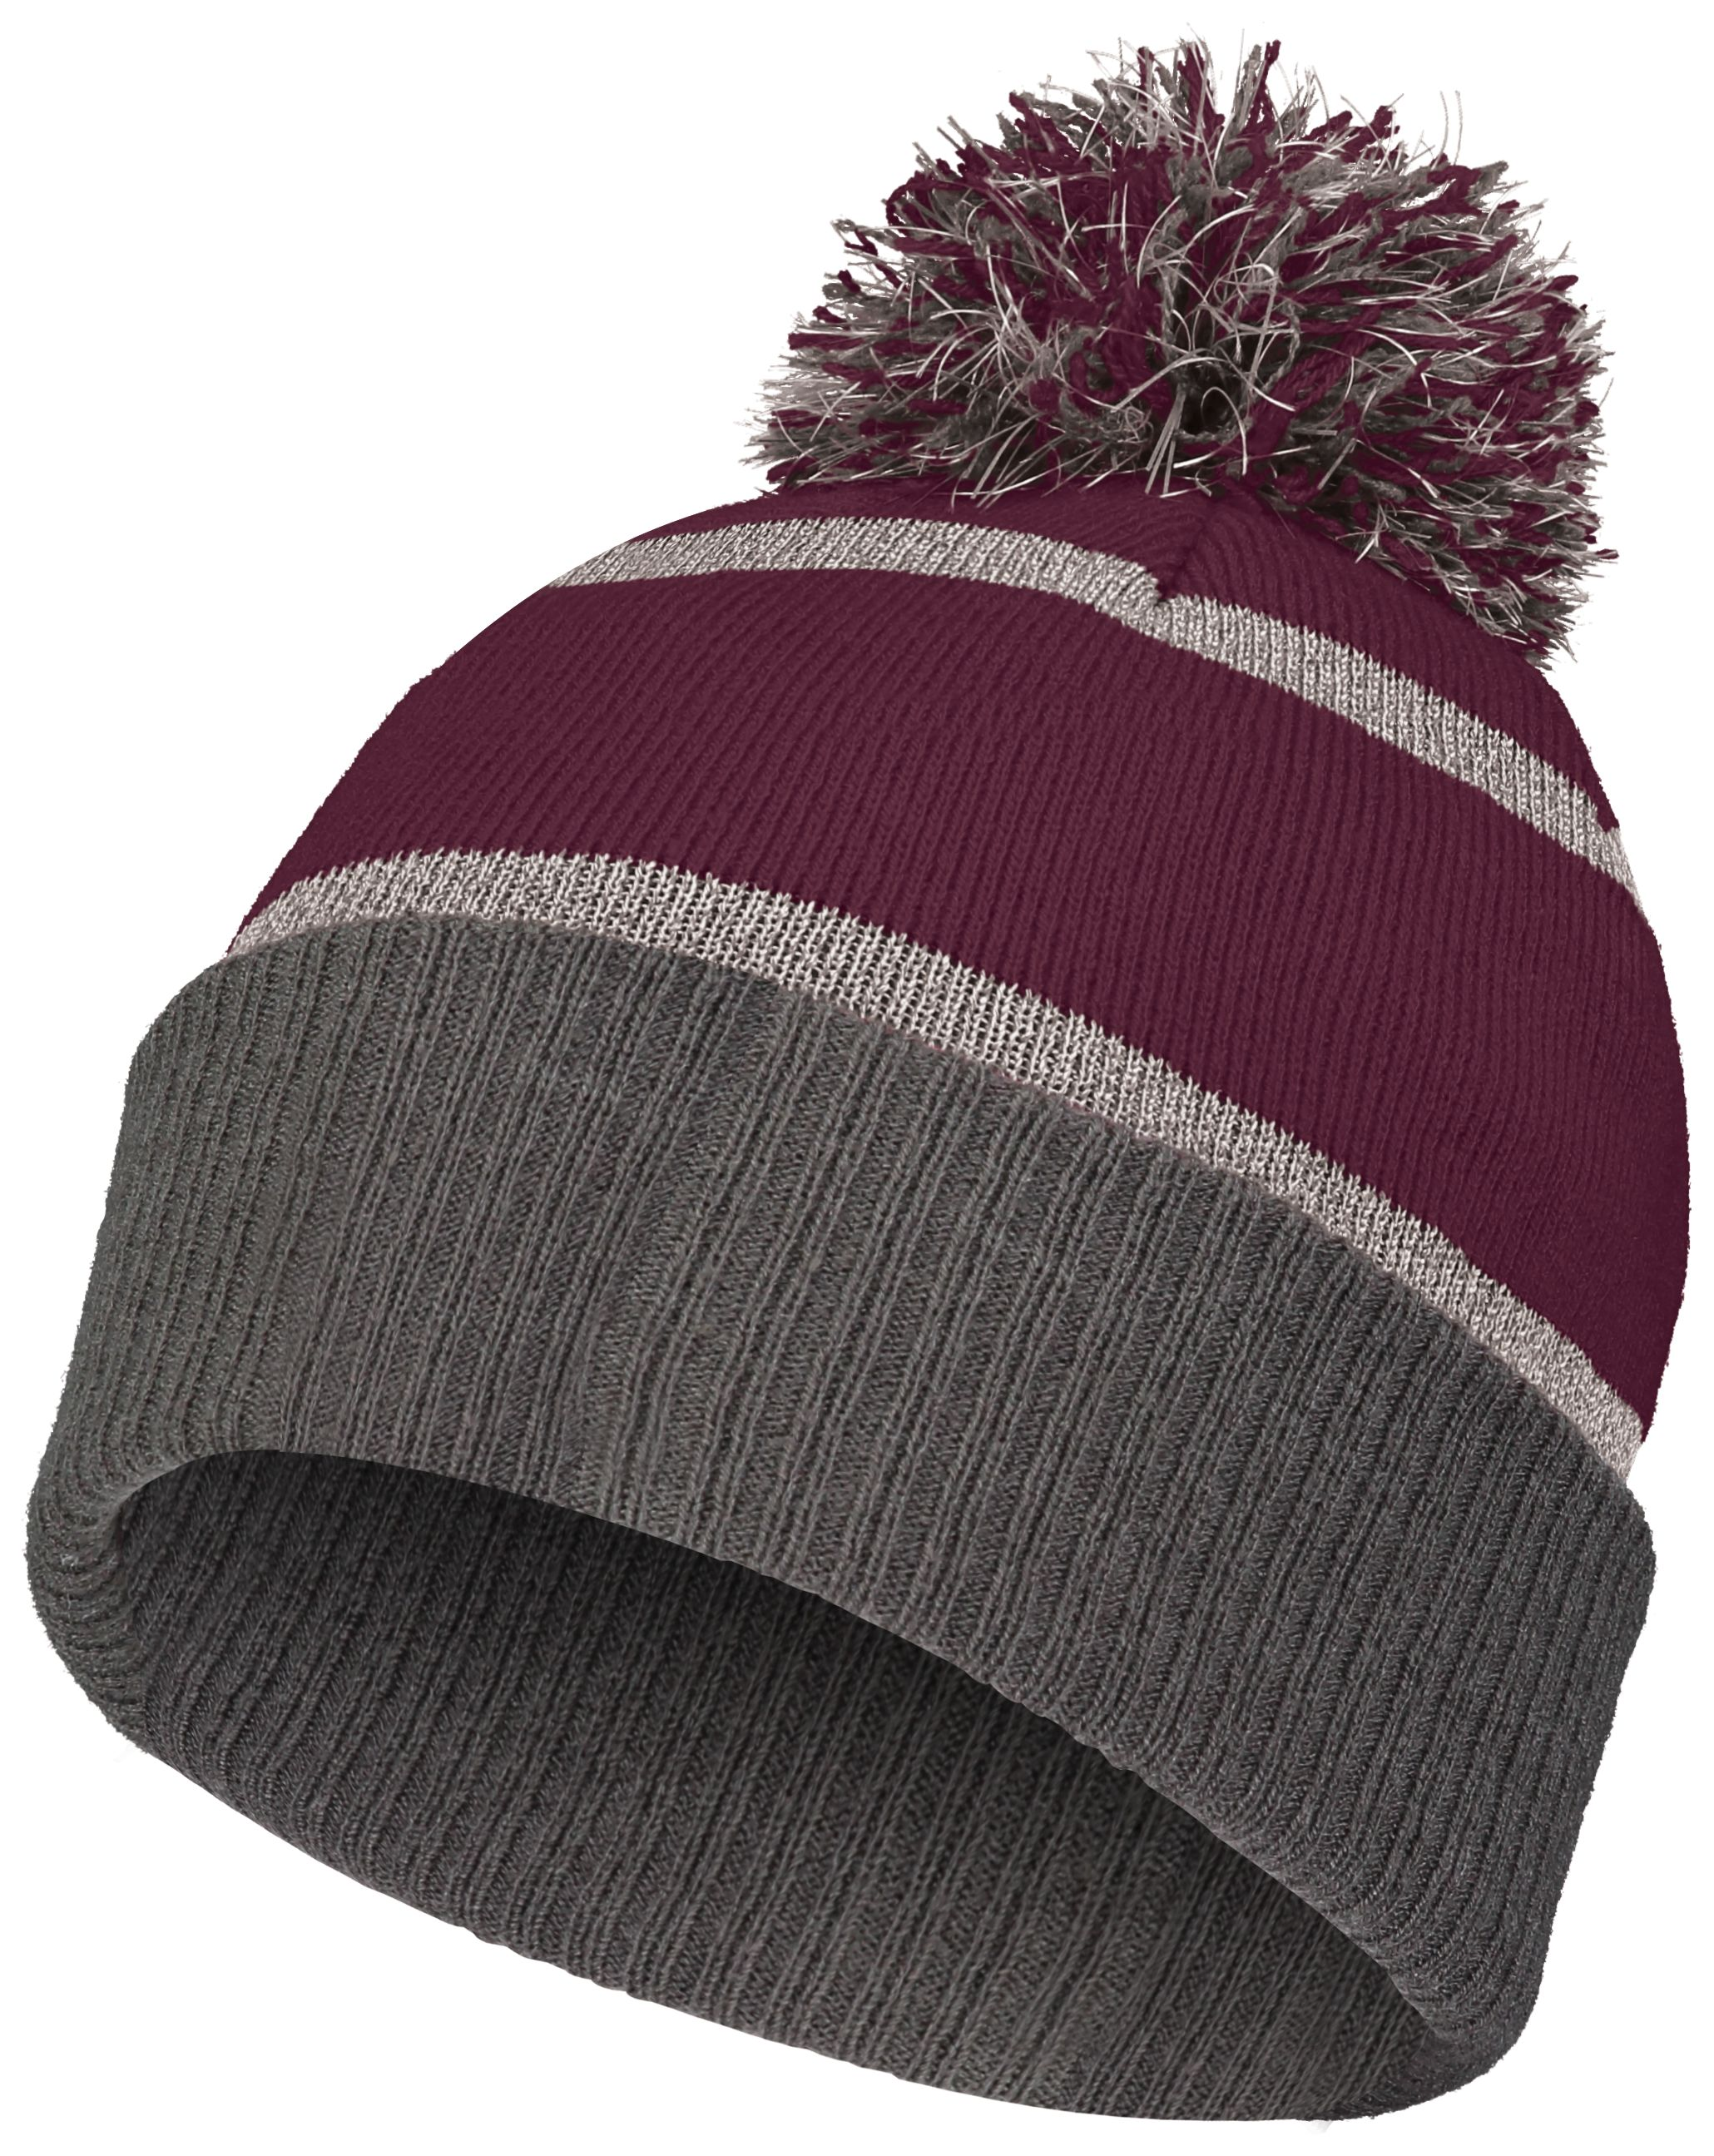 Reflective Beanie - MAROON/CARBON